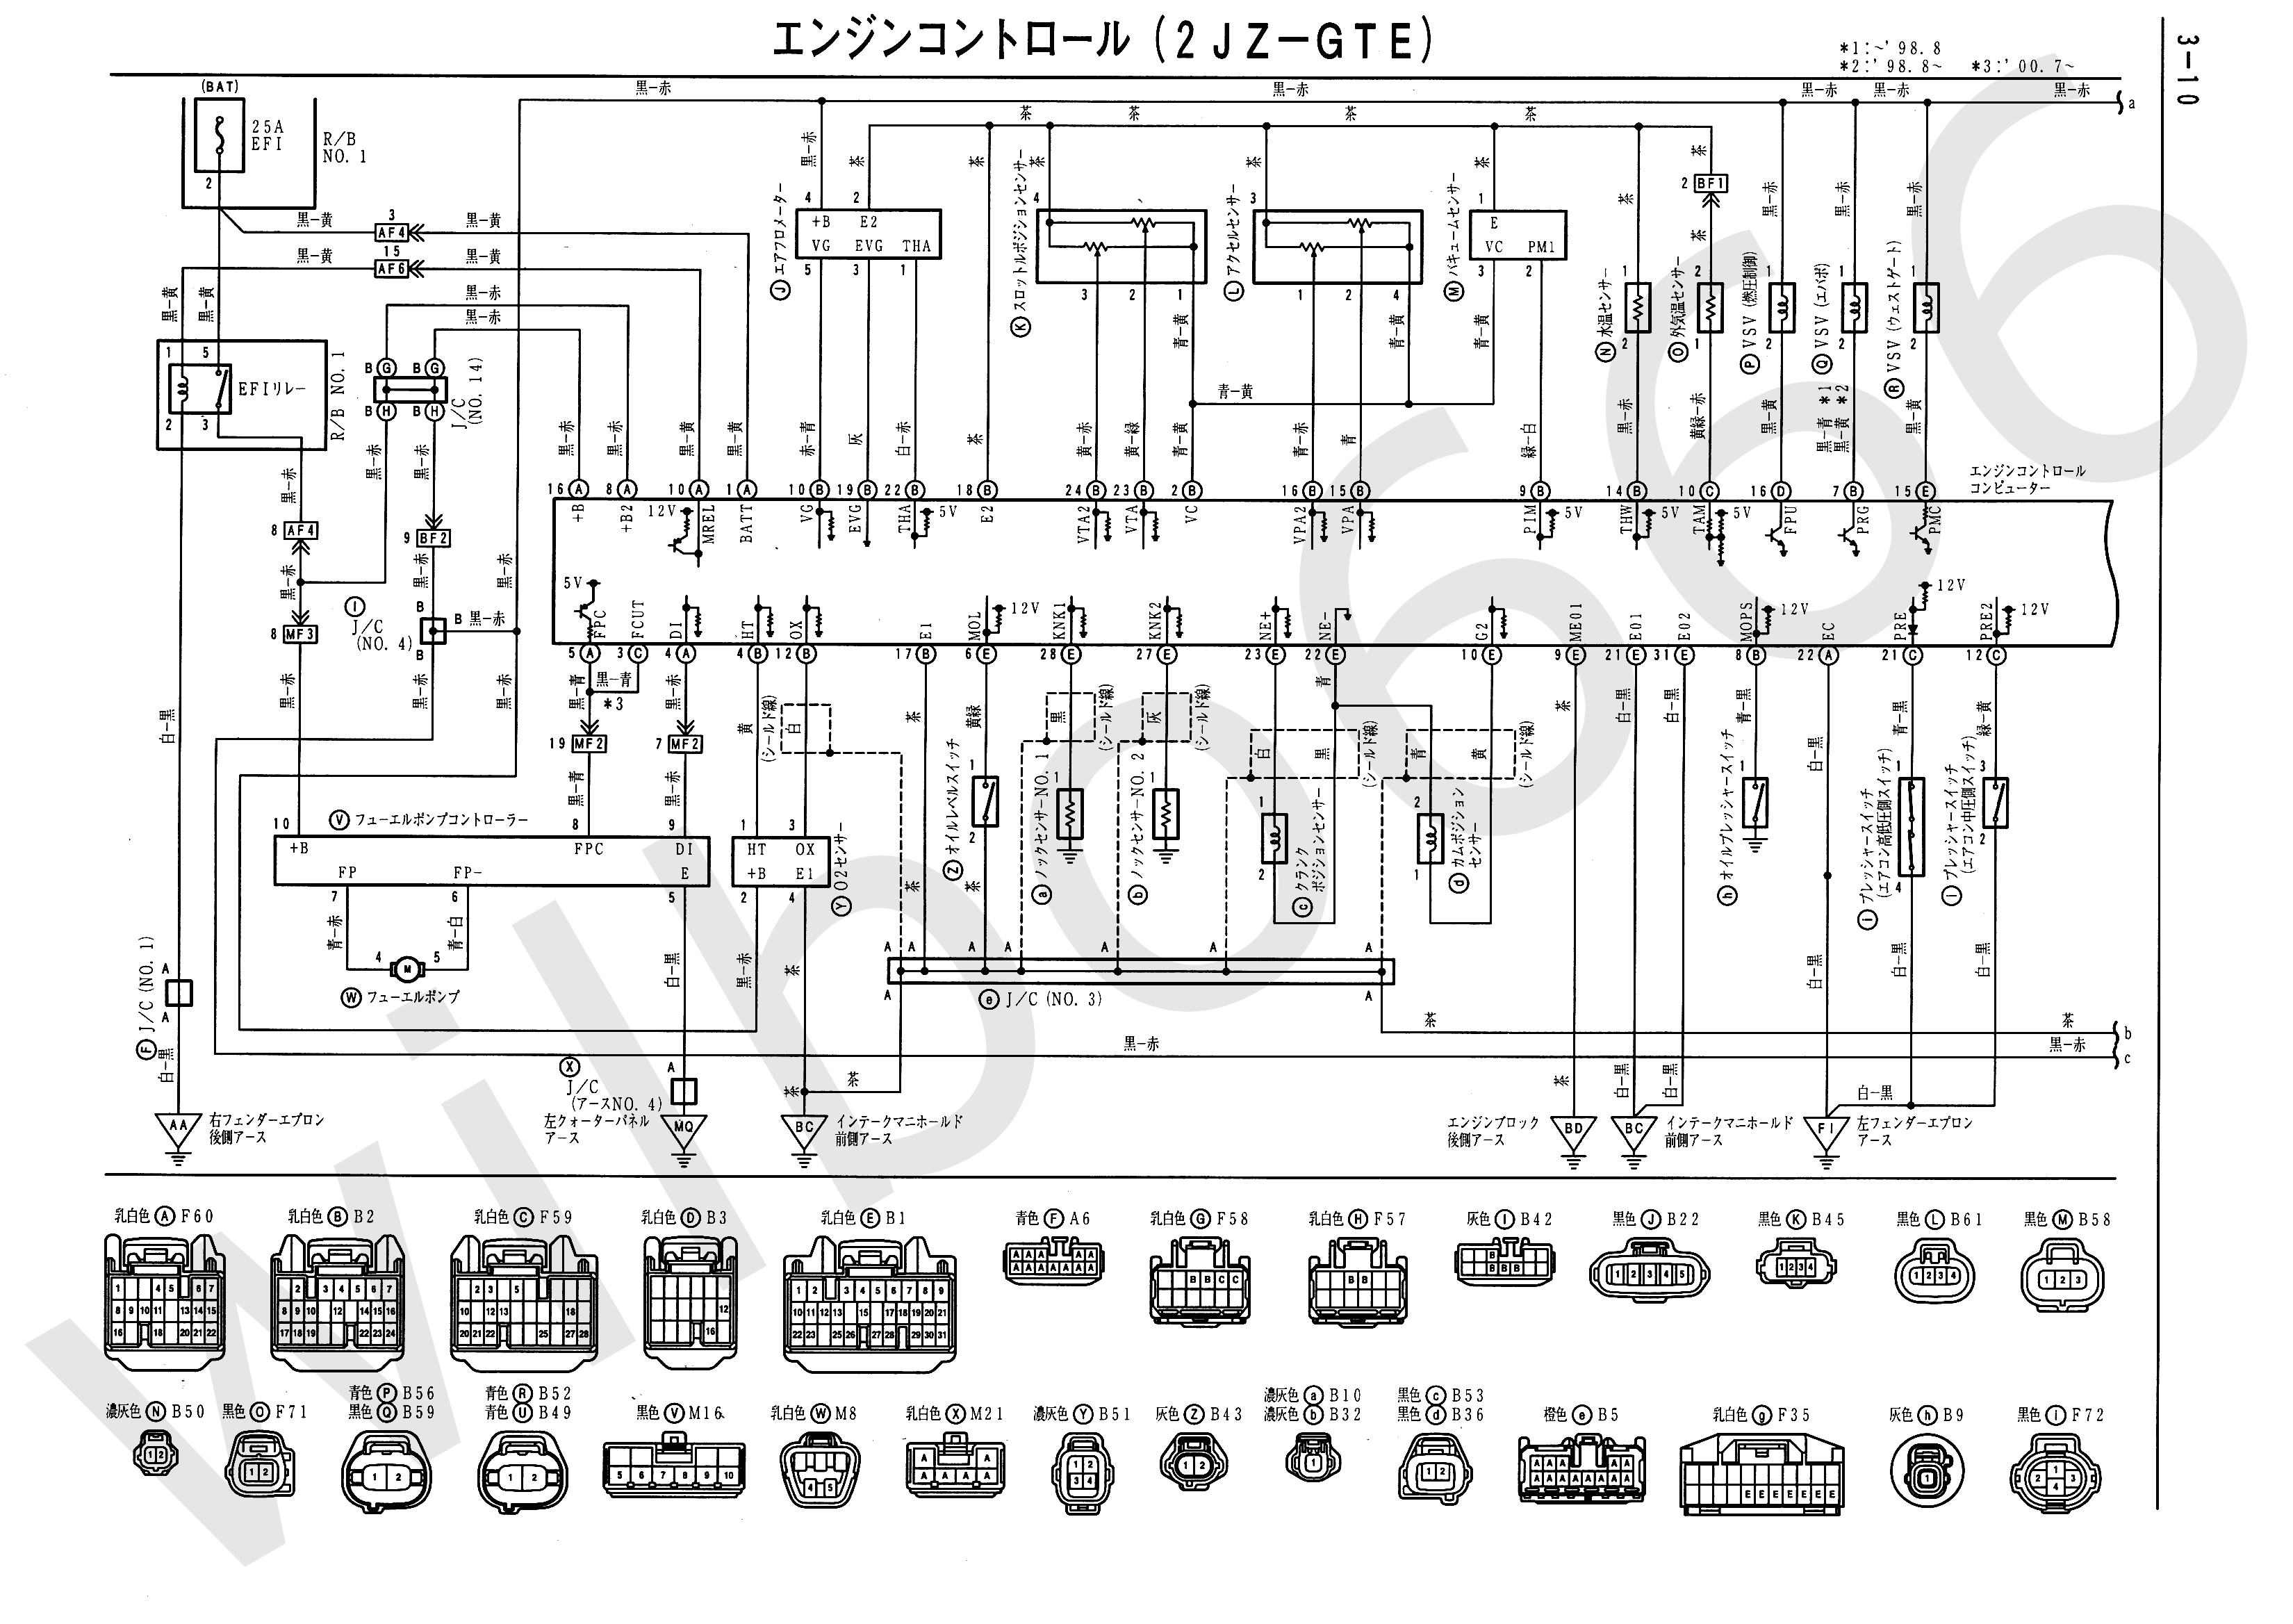 Jlg 1932e2 Wiring Schematic - Wiring Diagrams Schematics on yamaha wiring schematics, chevrolet wiring schematics, pierce wiring schematics, kubota wiring schematics, husqvarna wiring schematics, toyota wiring schematics, international wiring schematics, hyster wiring schematics, mitsubishi wiring schematics, mack wiring schematics, ford wiring schematics, sullair wiring schematics, toro wiring schematics, cushman wiring schematics, komatsu wiring schematics, honda wiring schematics, john deere wiring schematics, ingersoll rand wiring schematics, mazda wiring schematics, hino wiring schematics,